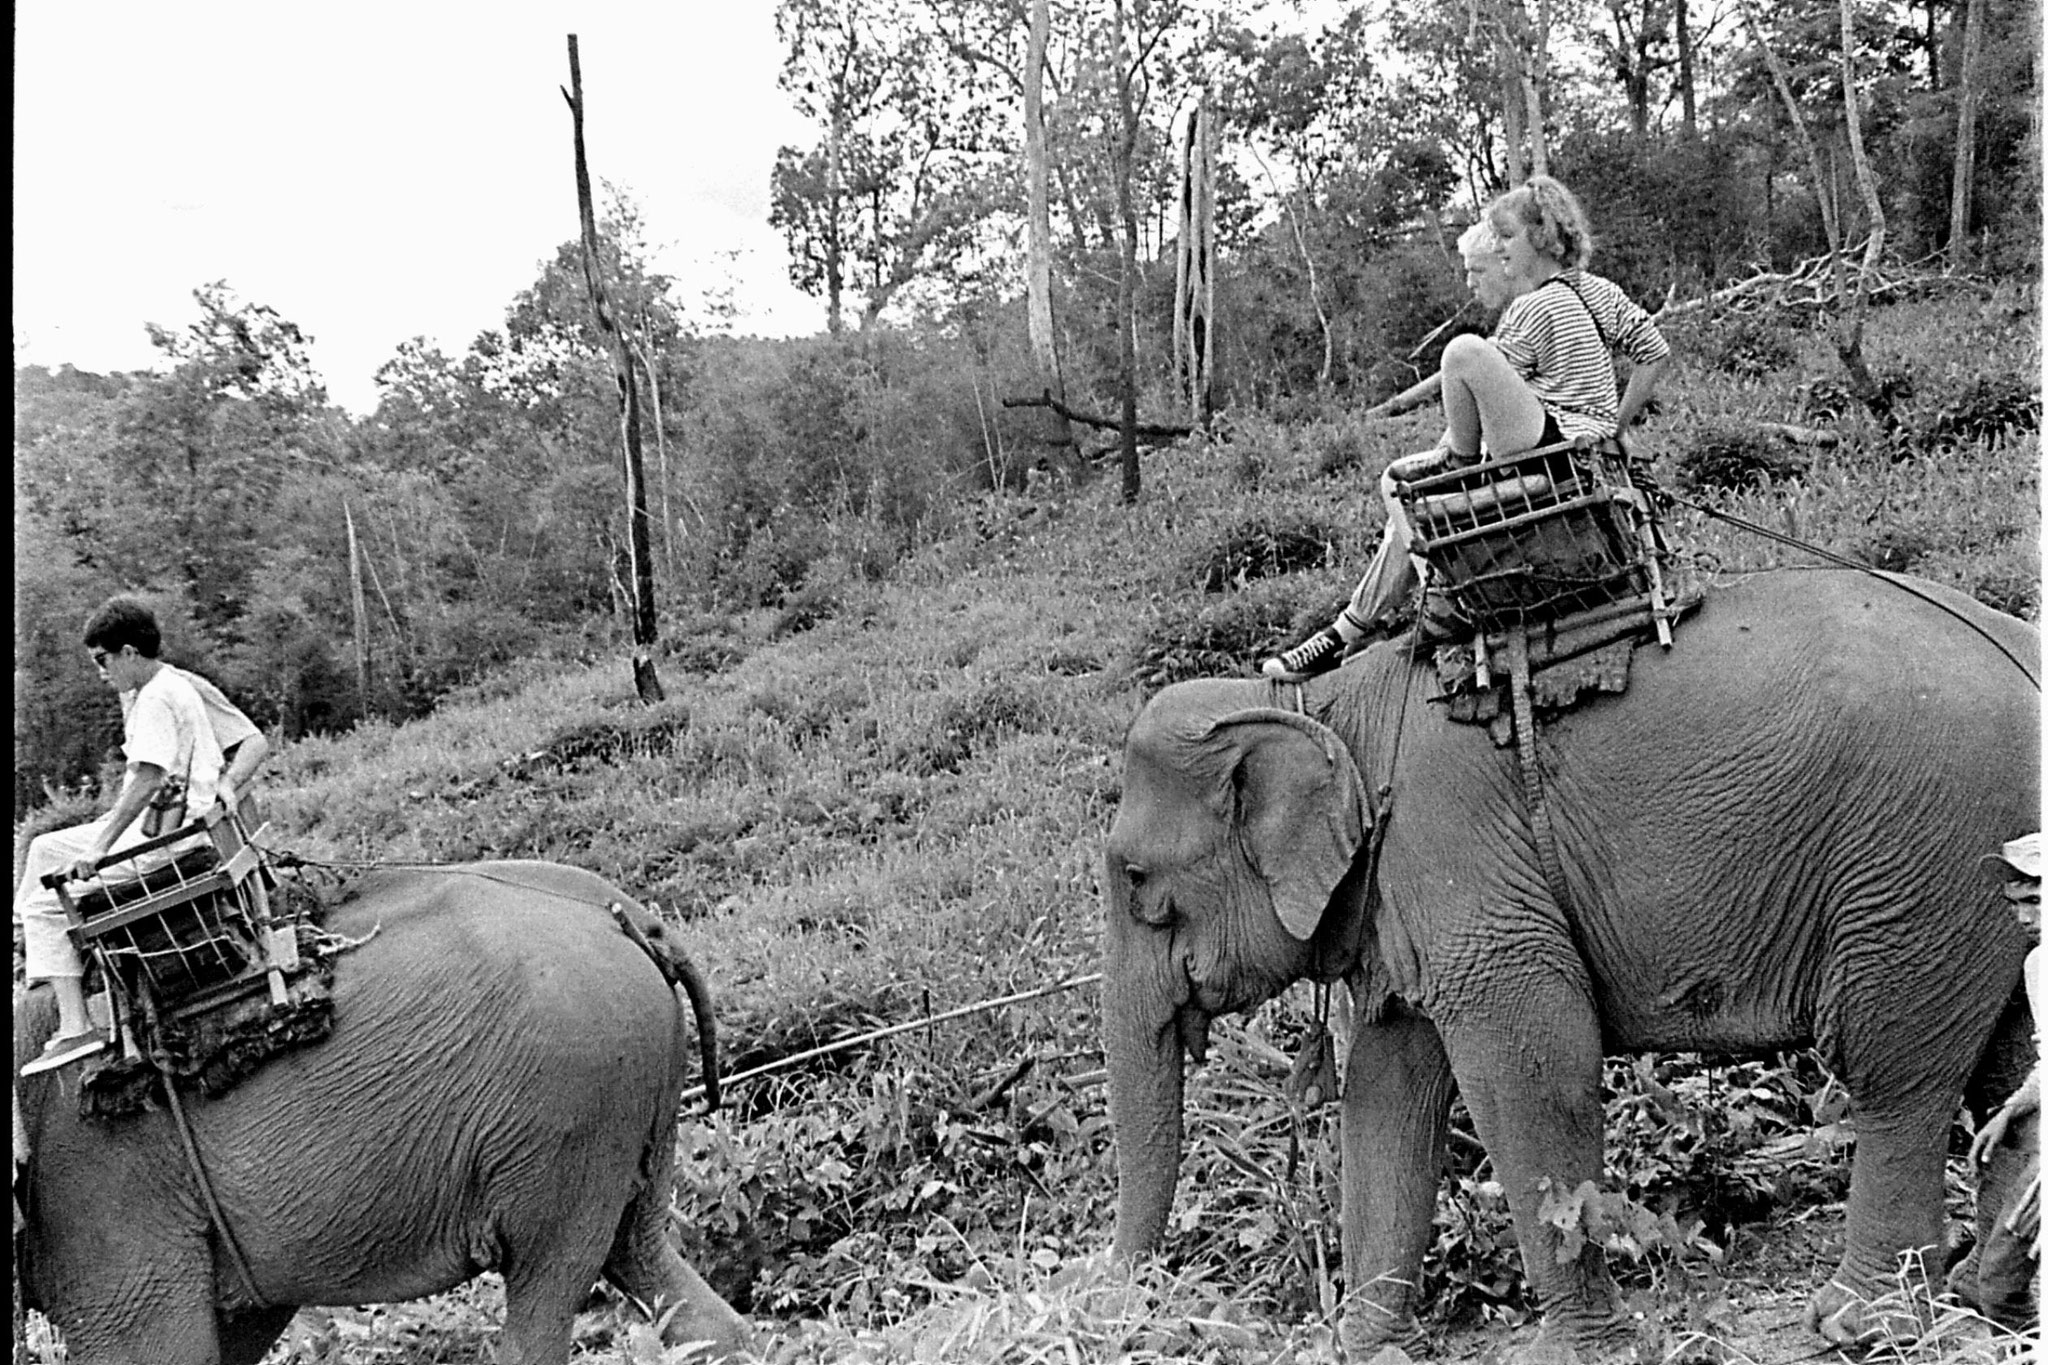 13/6/1990: 29: Last day of Trek, on elephant